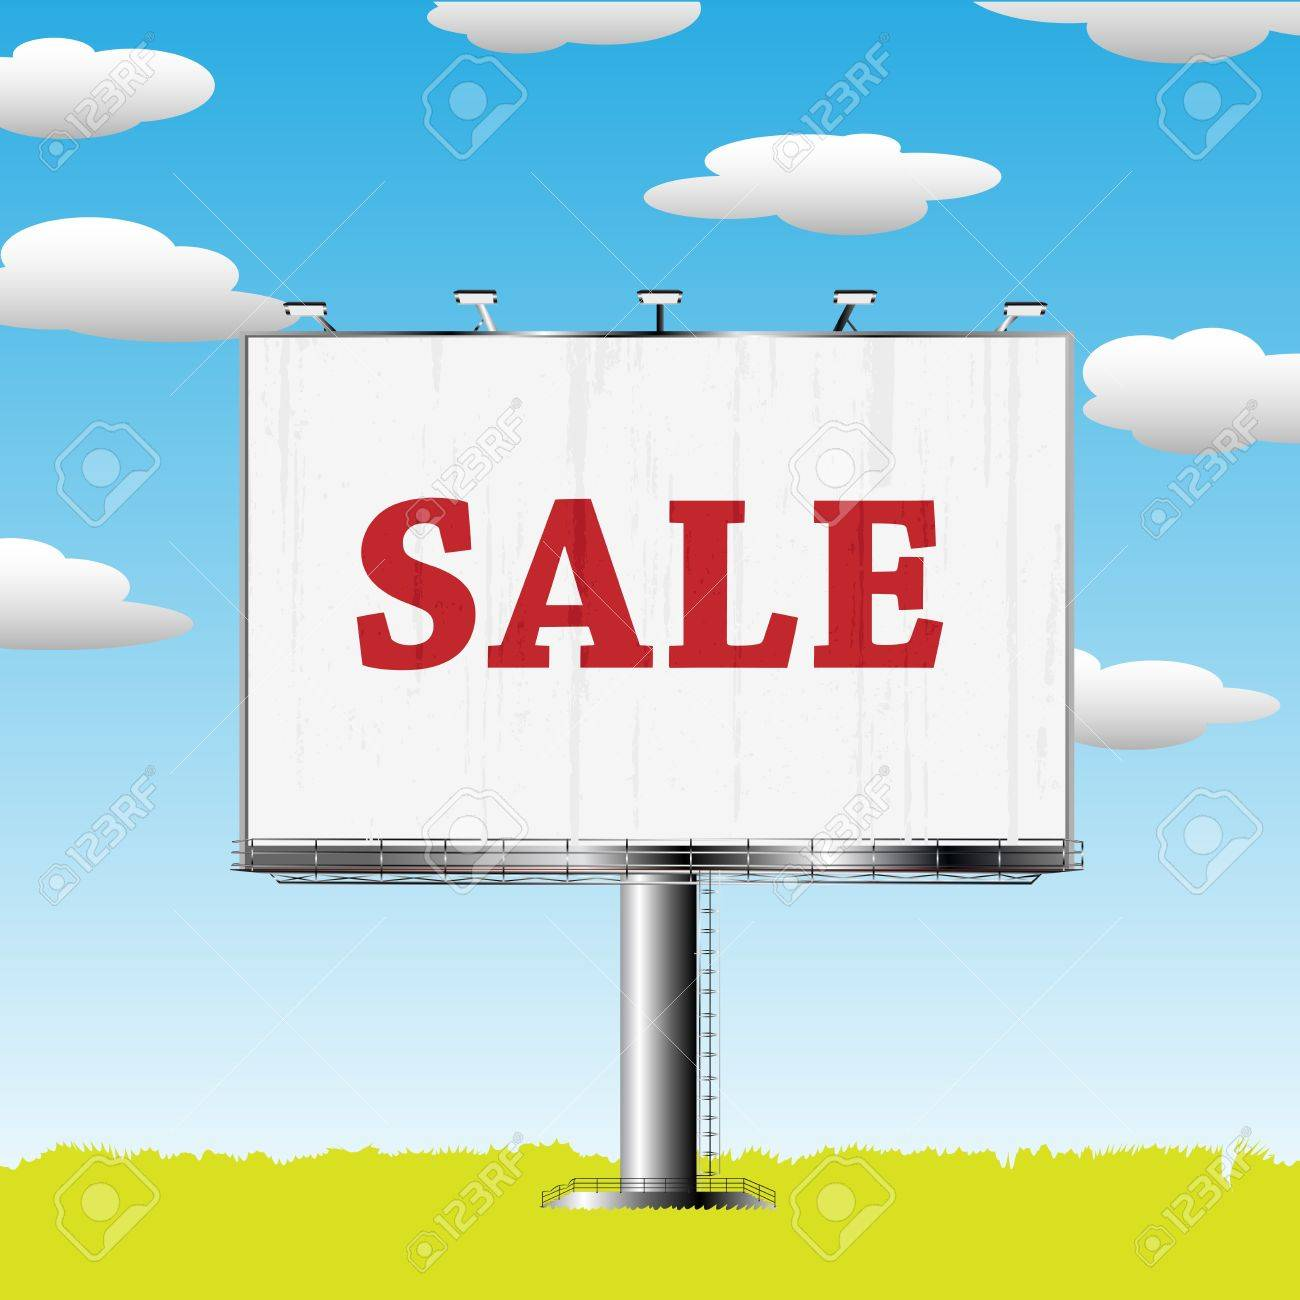 Grand outdoor billboard with sale sign over cloud backgrouns Stock Vector - 8146596